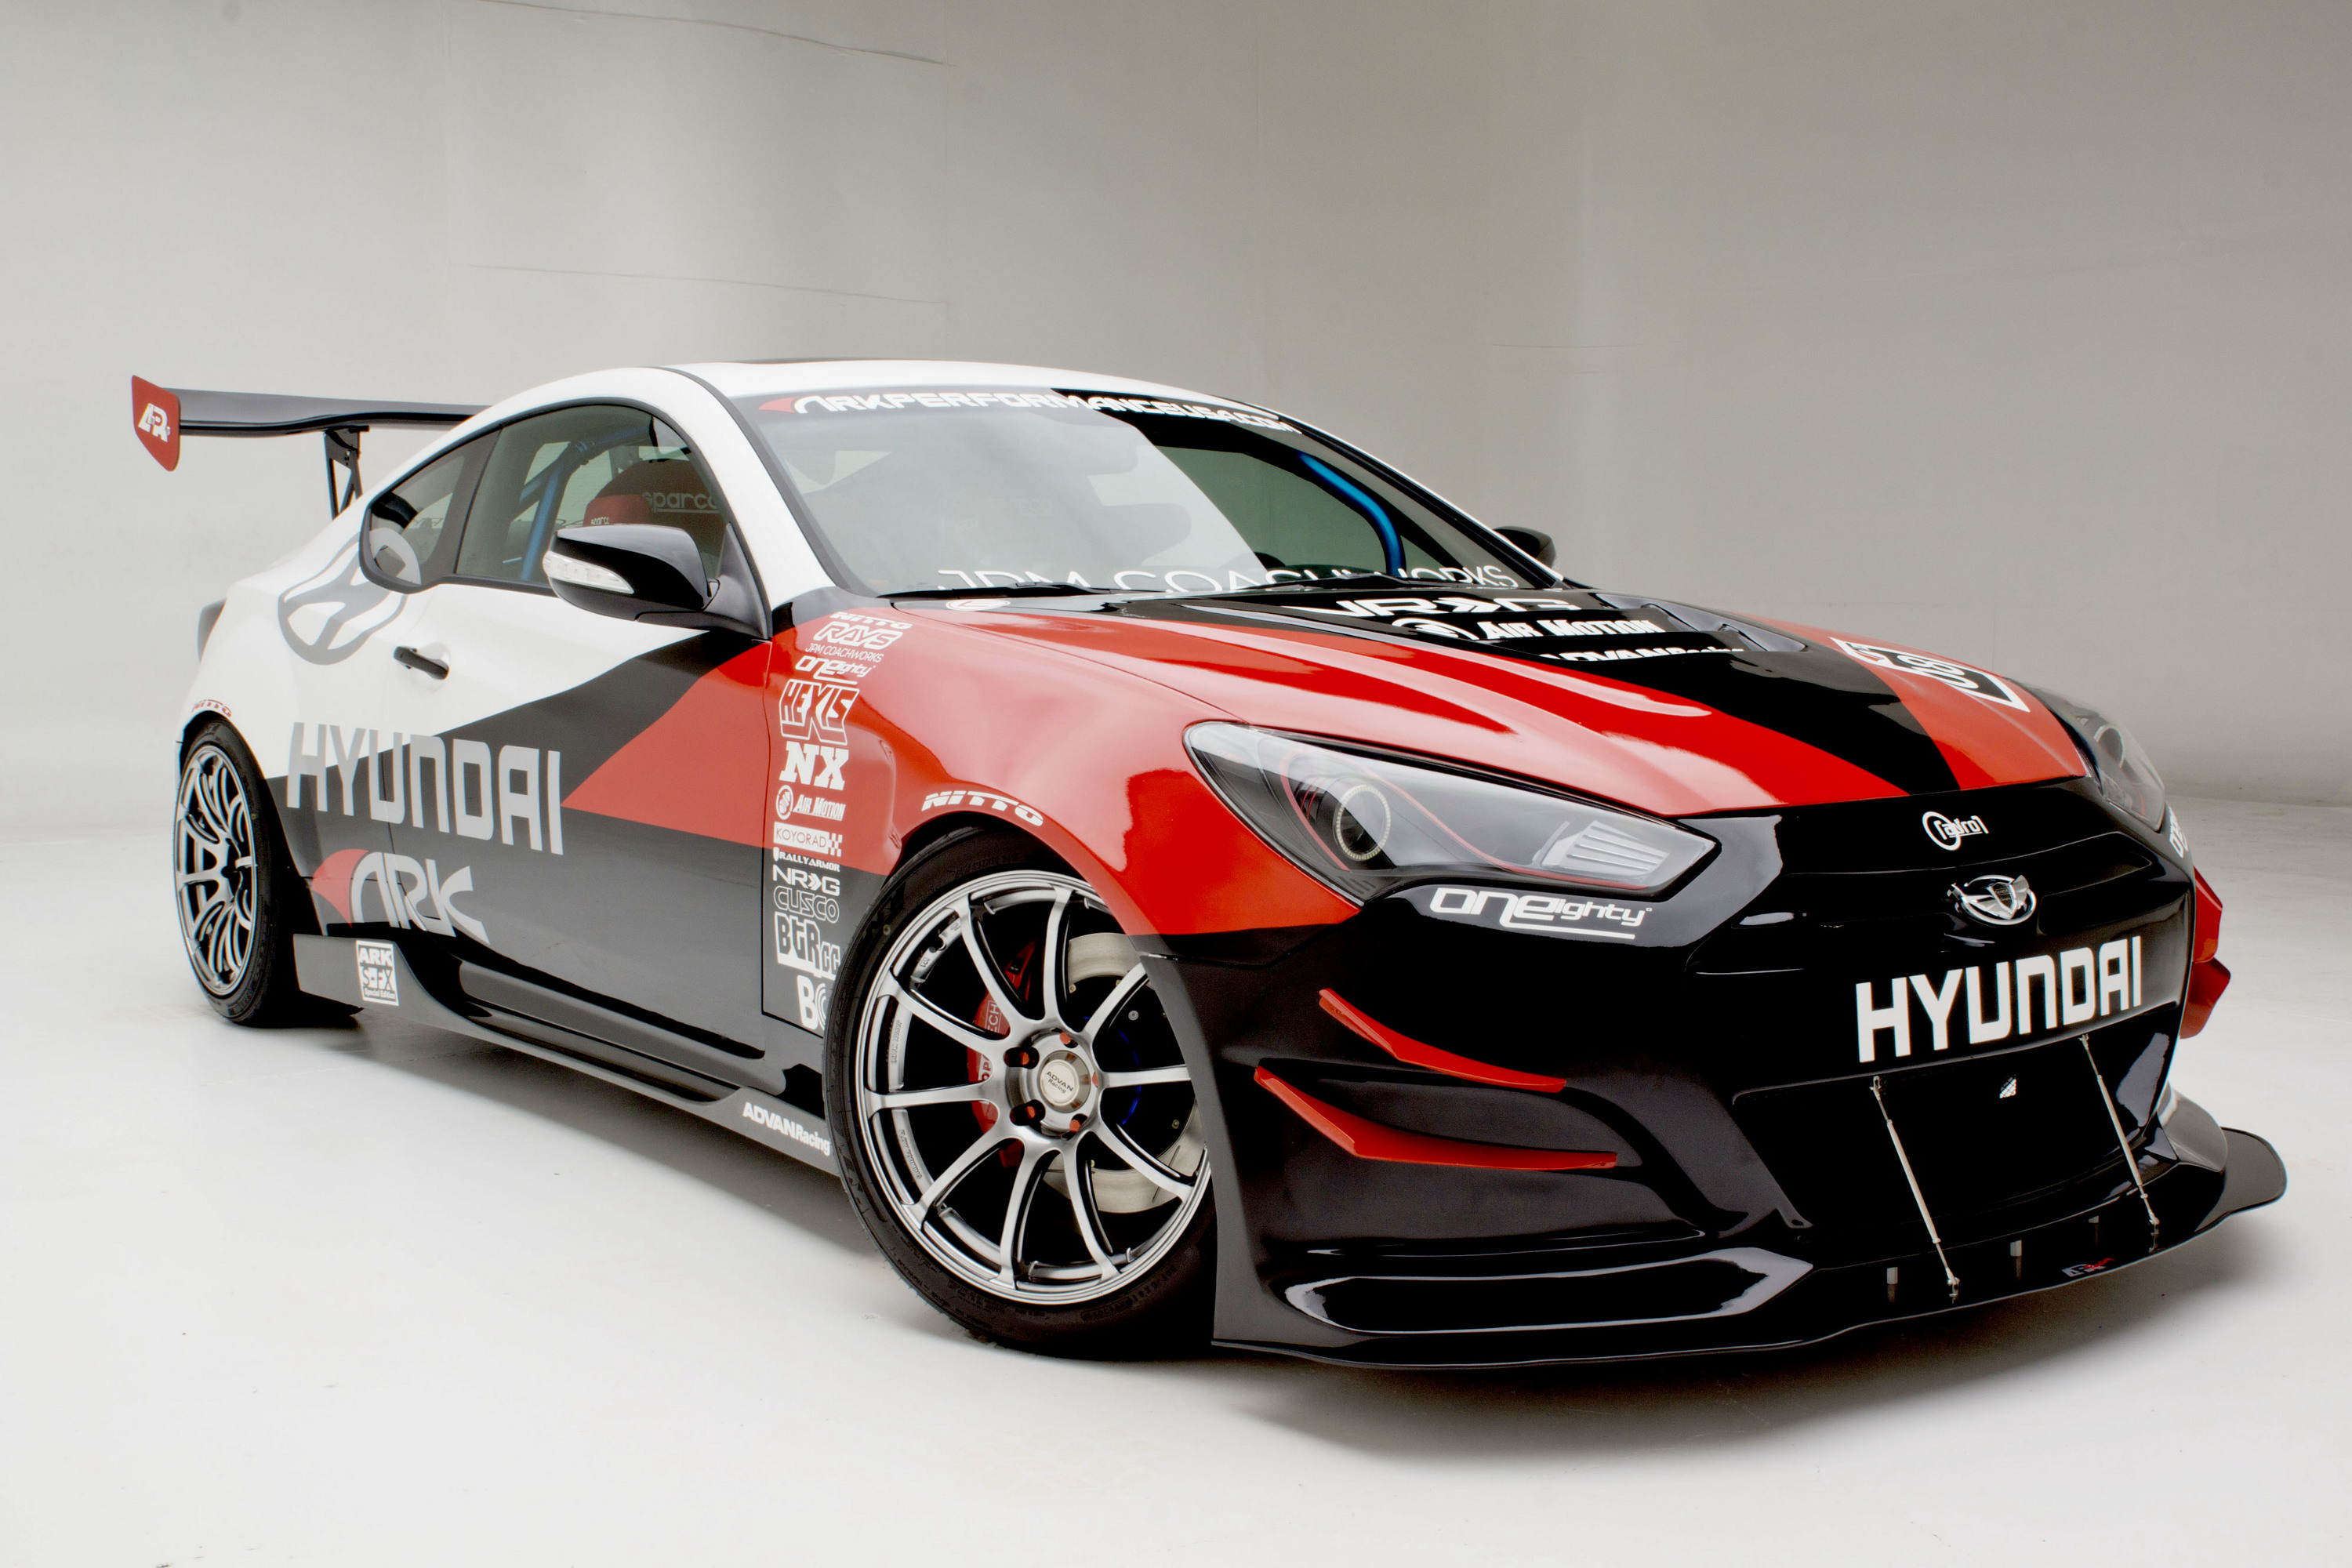 2013 hyundai genesis coupe r spec by ark review top speed. Black Bedroom Furniture Sets. Home Design Ideas